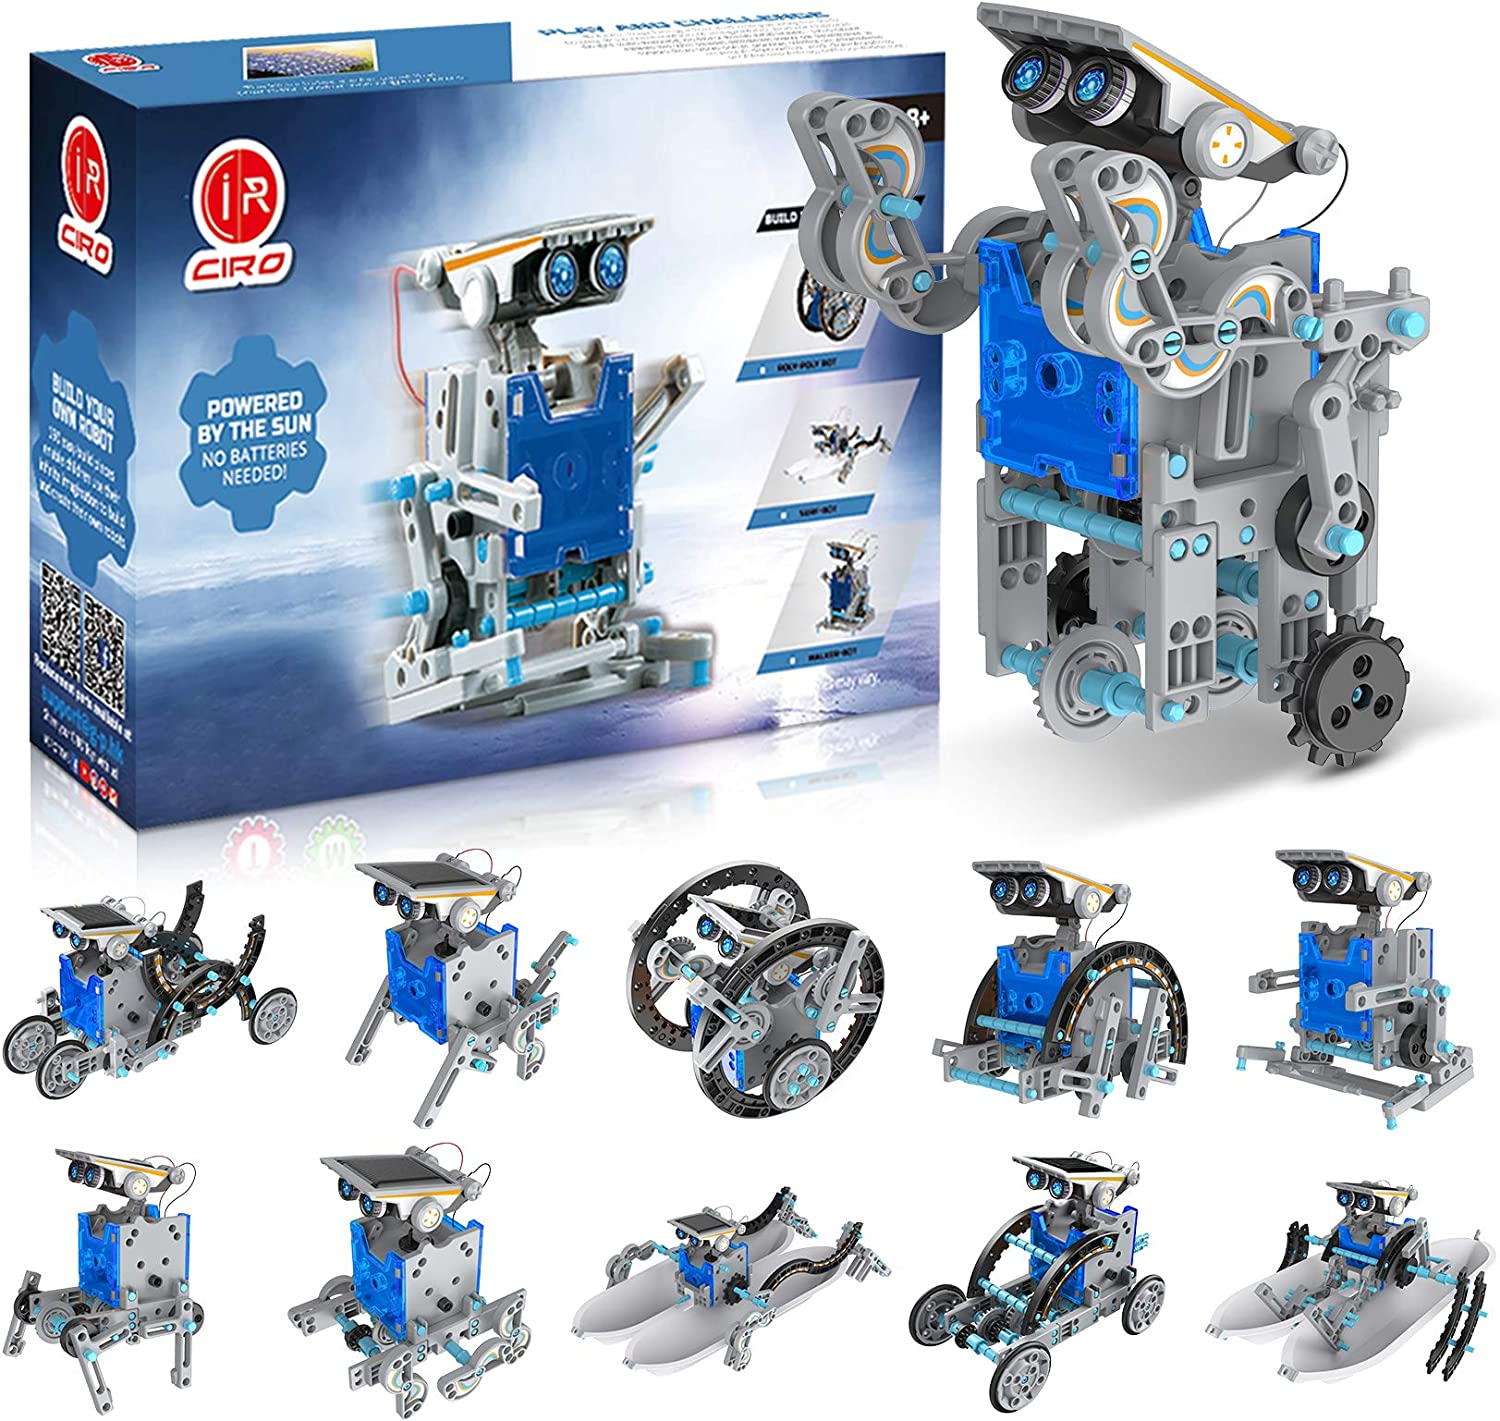 CIRO Solar Robot Toys, STEM Toys Projects for Kids Ages 8-12 and Older, Science Building Educational Gifts for Boys 8 Years and up